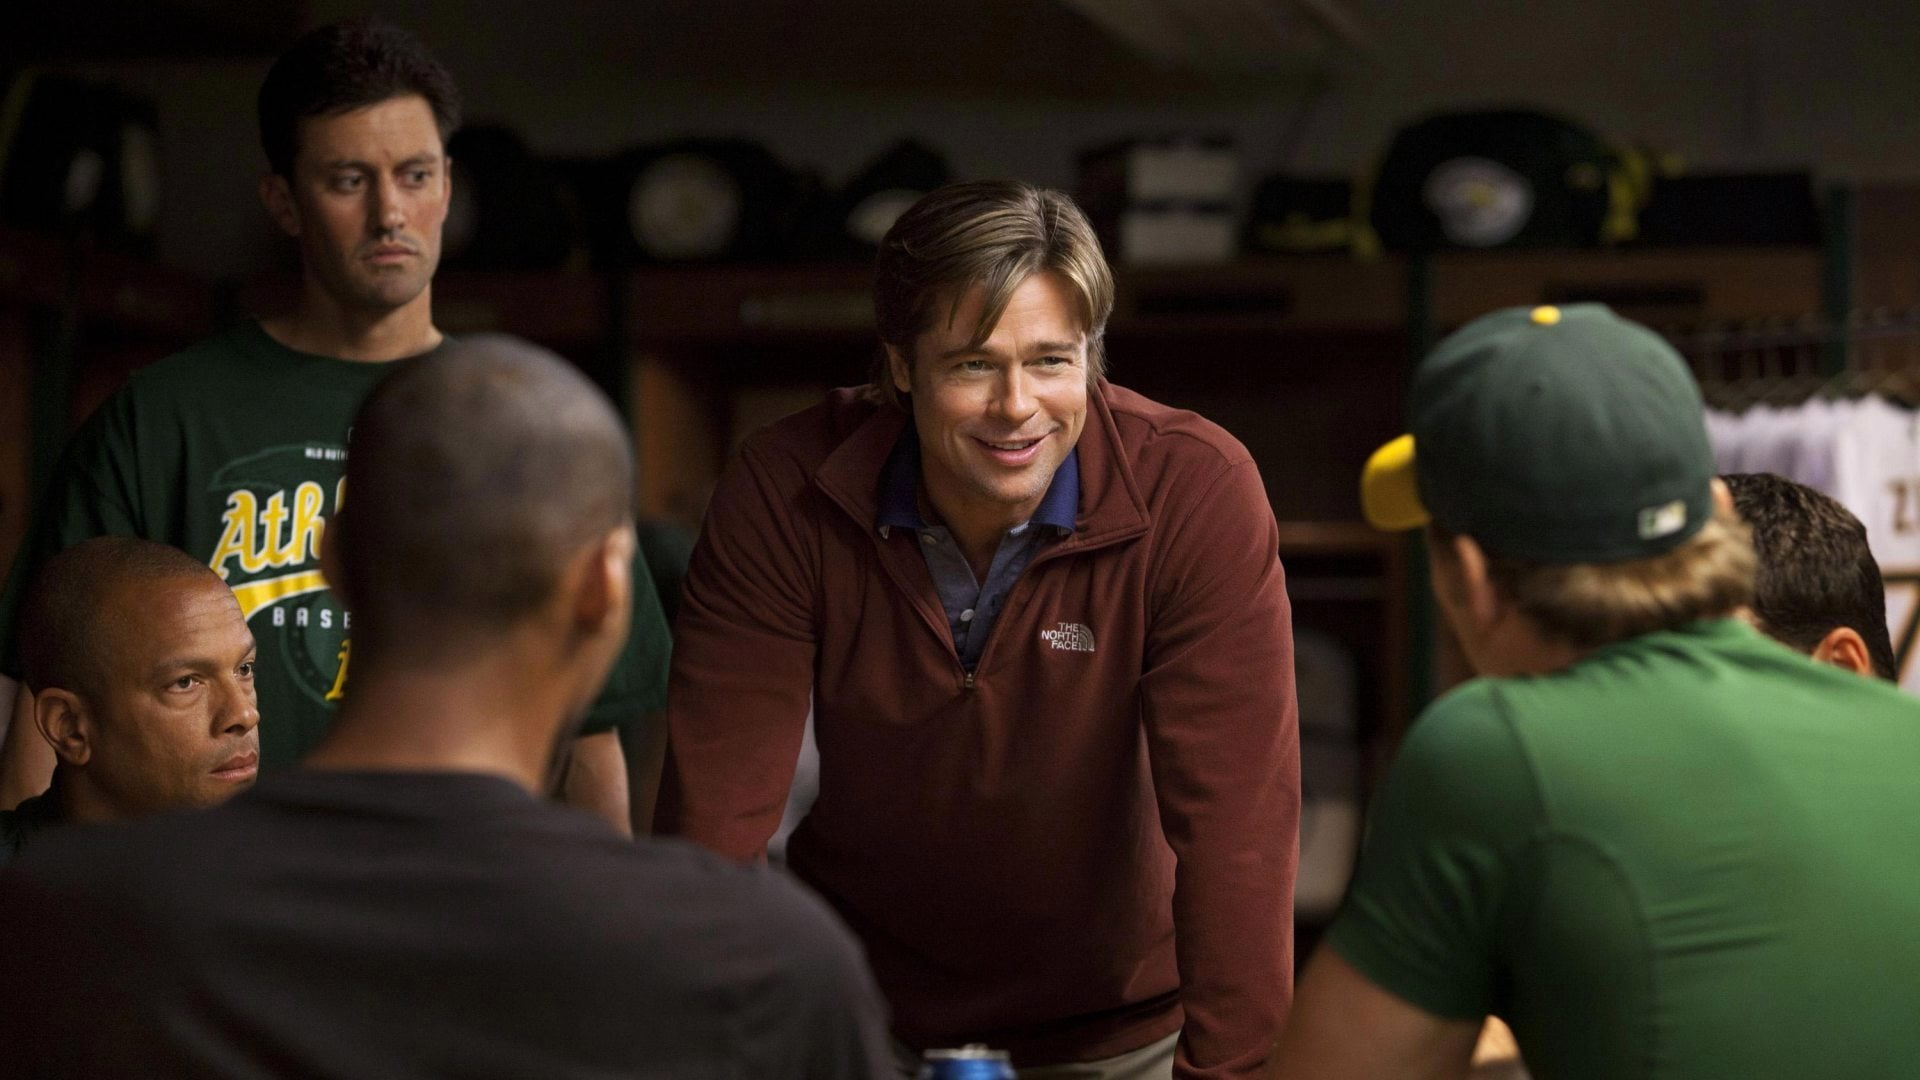 Brad Pitt explains the importance of analytics in Moneyball.